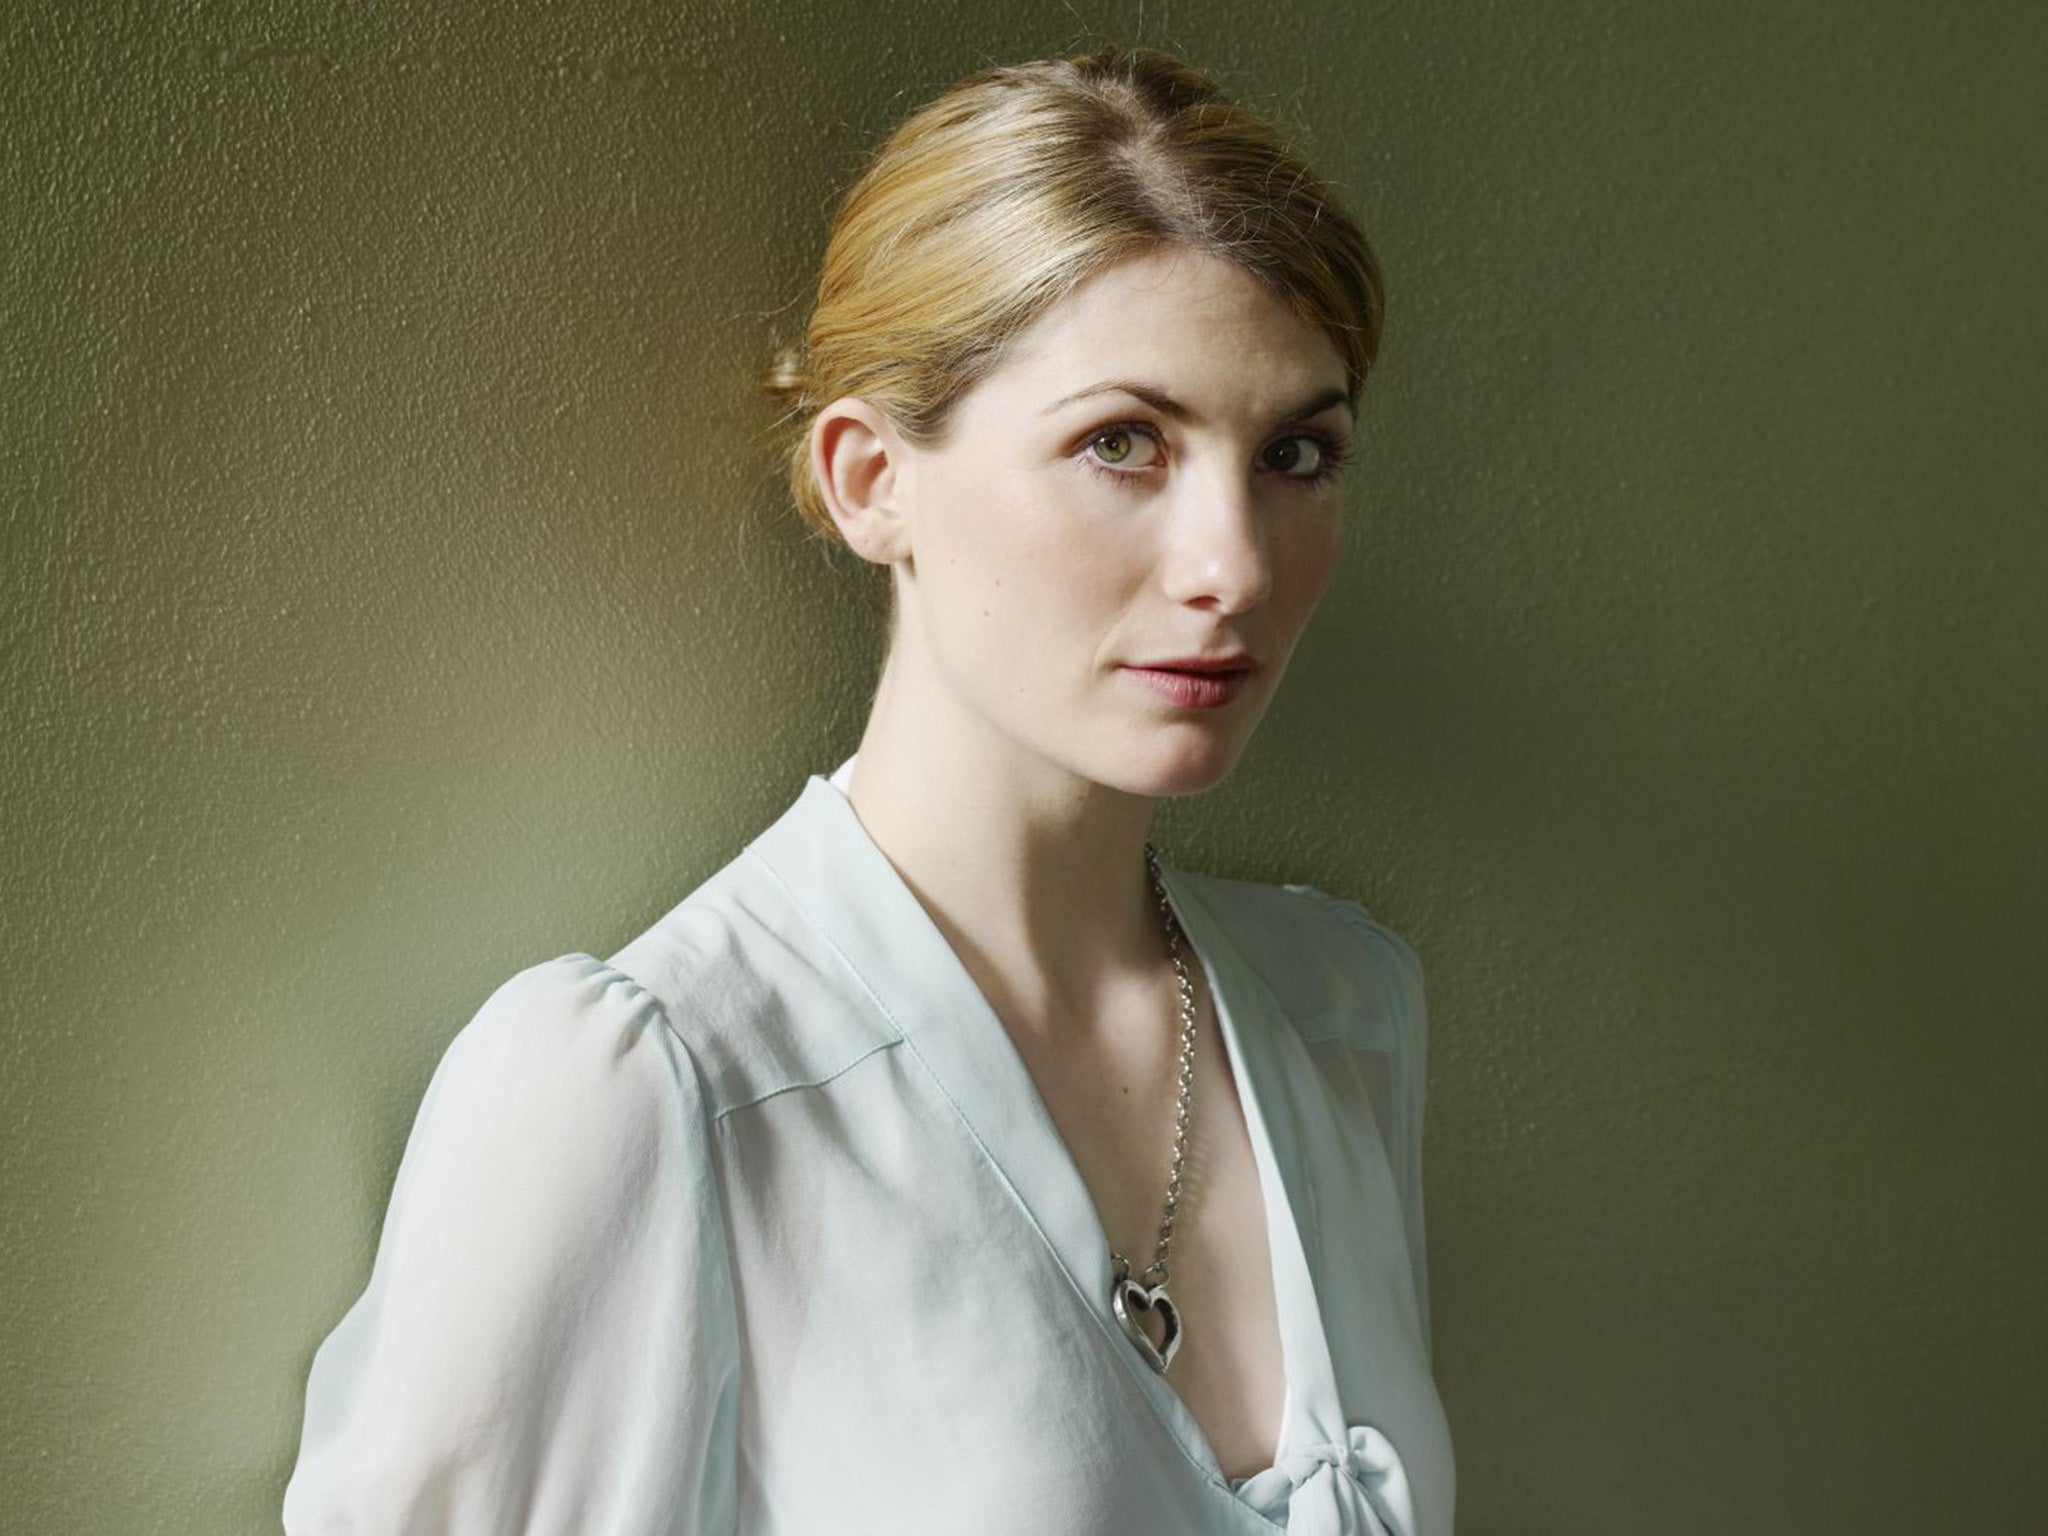 jodie whittaker husbandjodie whittaker height, jodie whittaker twitter, jodie whittaker imdb, jodie whittaker broadchurch, jodie whittaker instagram, jodie whittaker on venus, jodie whittaker photos, jodie whittaker black mirror, jodie whittaker one day, jodie whittaker movies and tv shows, jodie whittaker pregnant, jodie whittaker husband, jodie whittaker baby, jodie whittaker baby born, jodie whittaker nudography